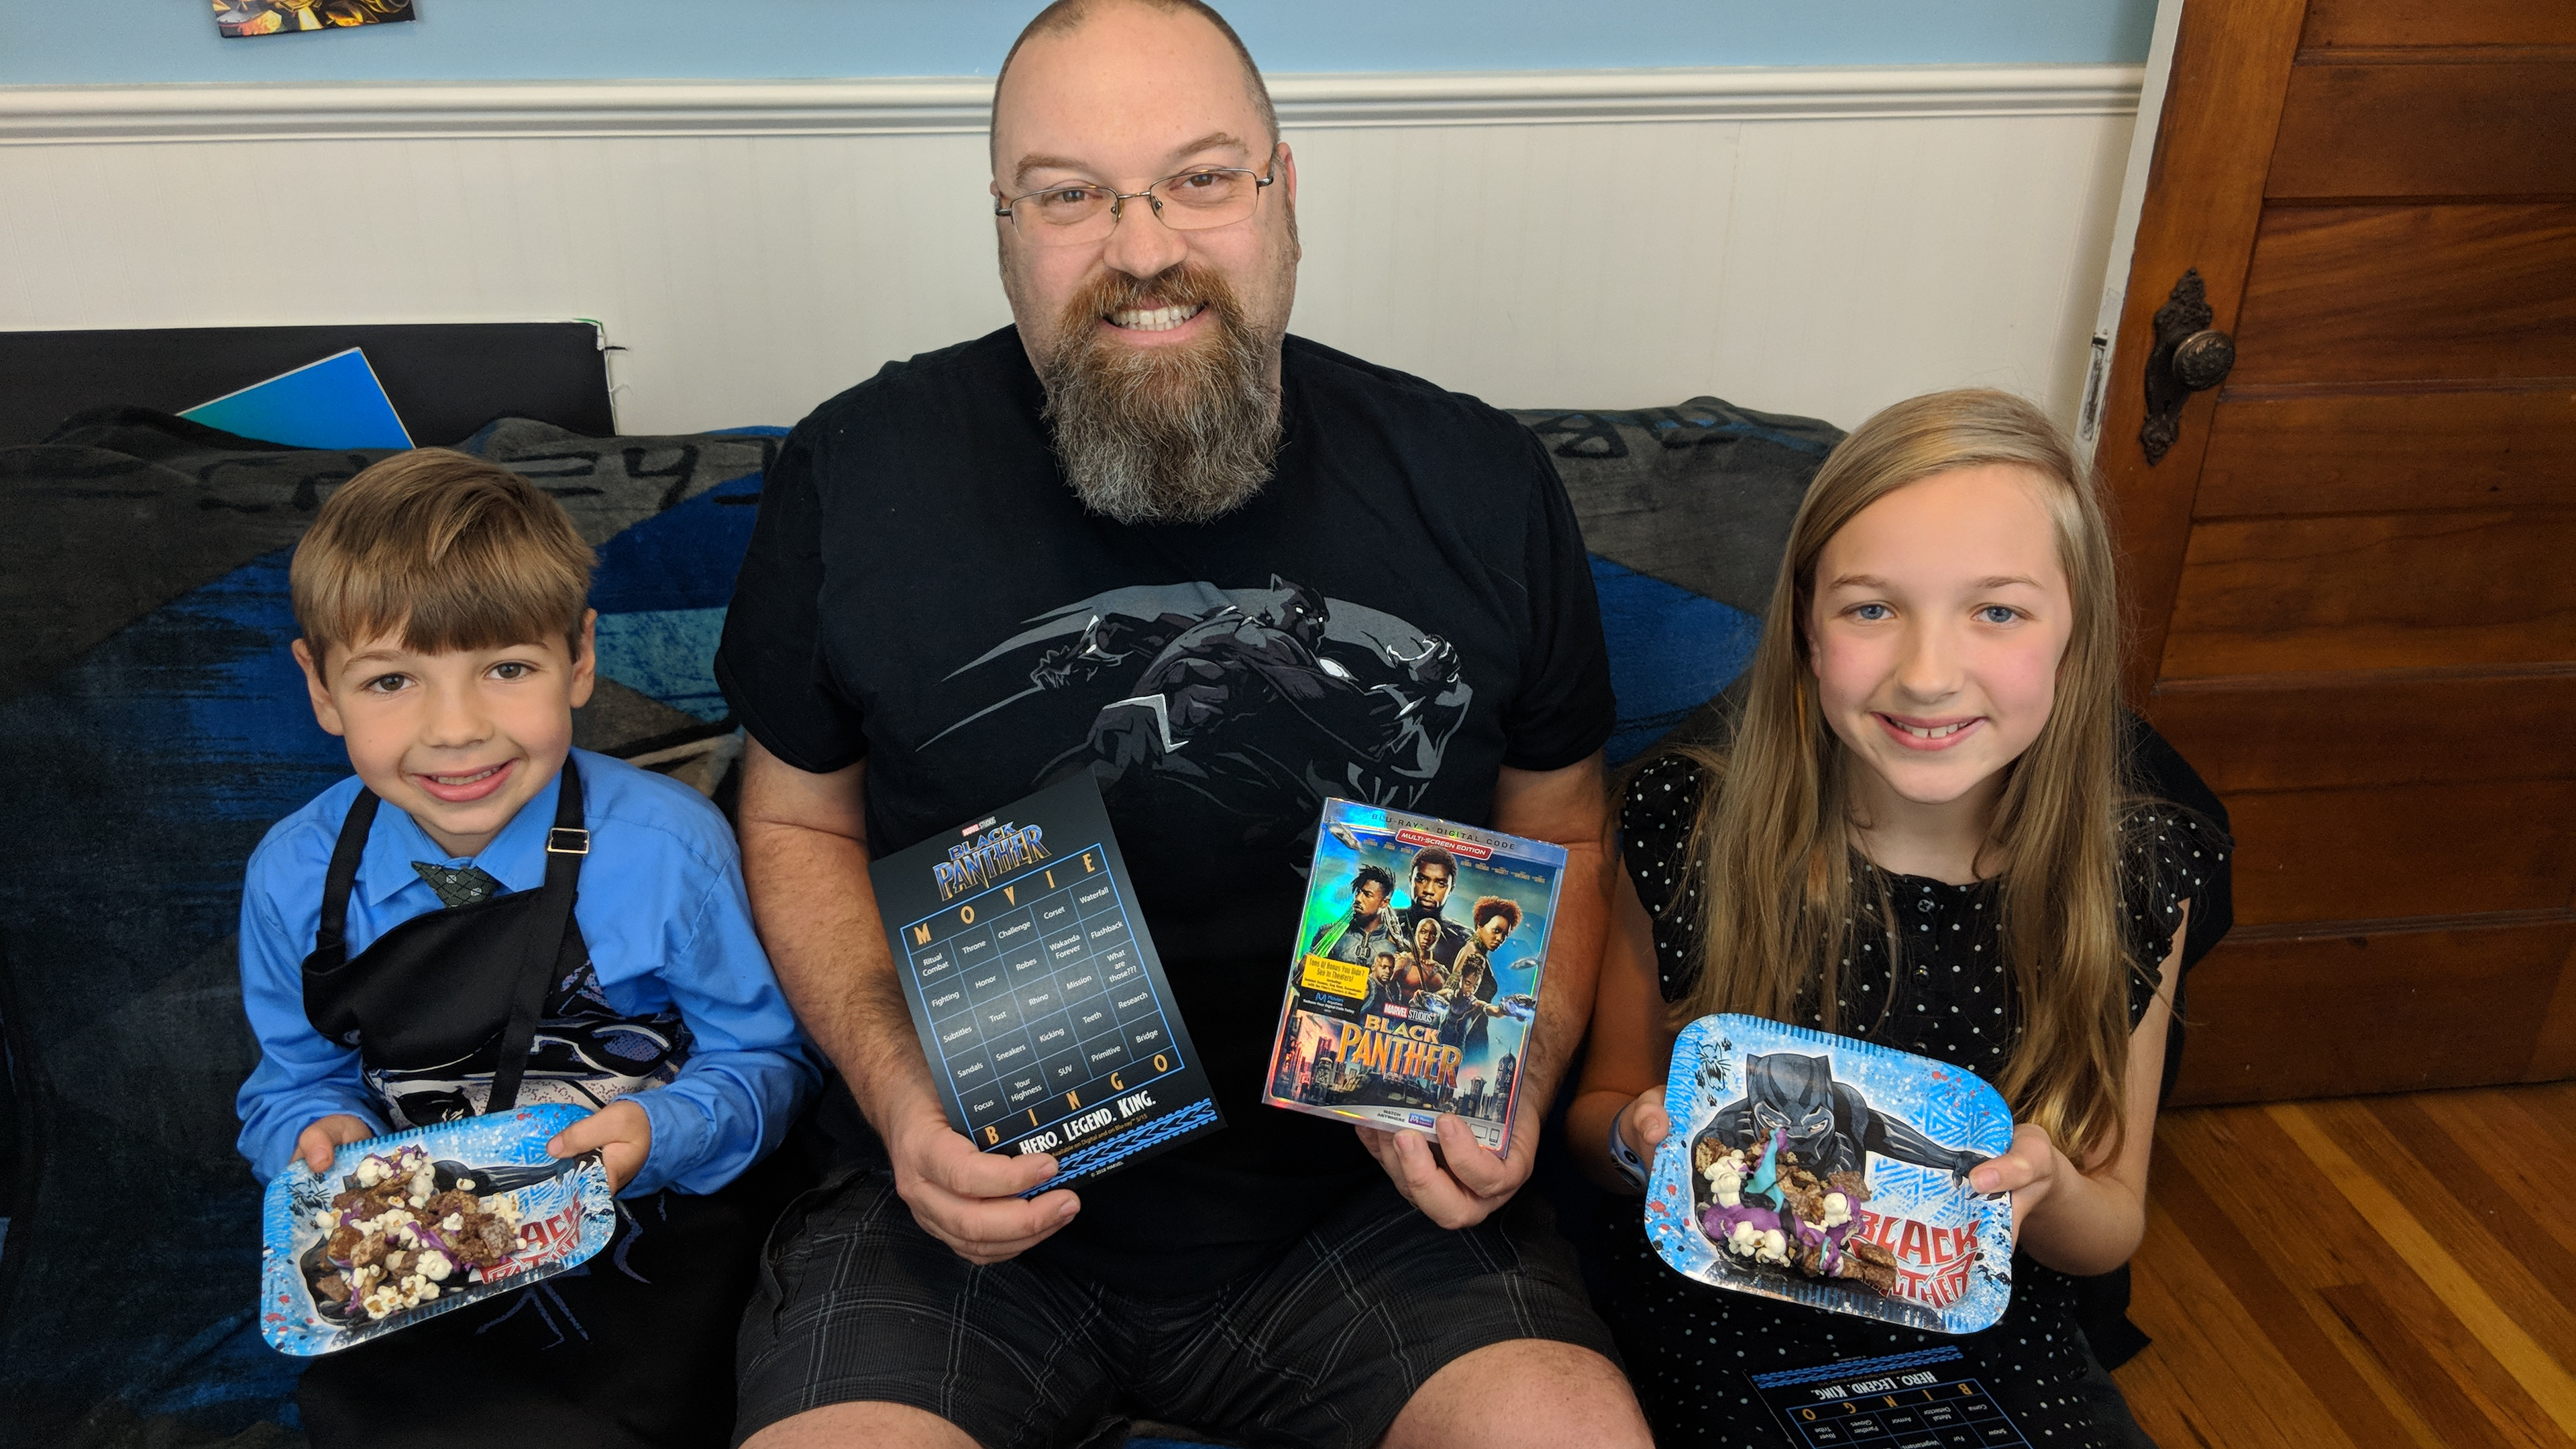 With the kids celebrating the Black Panther Blu-ray